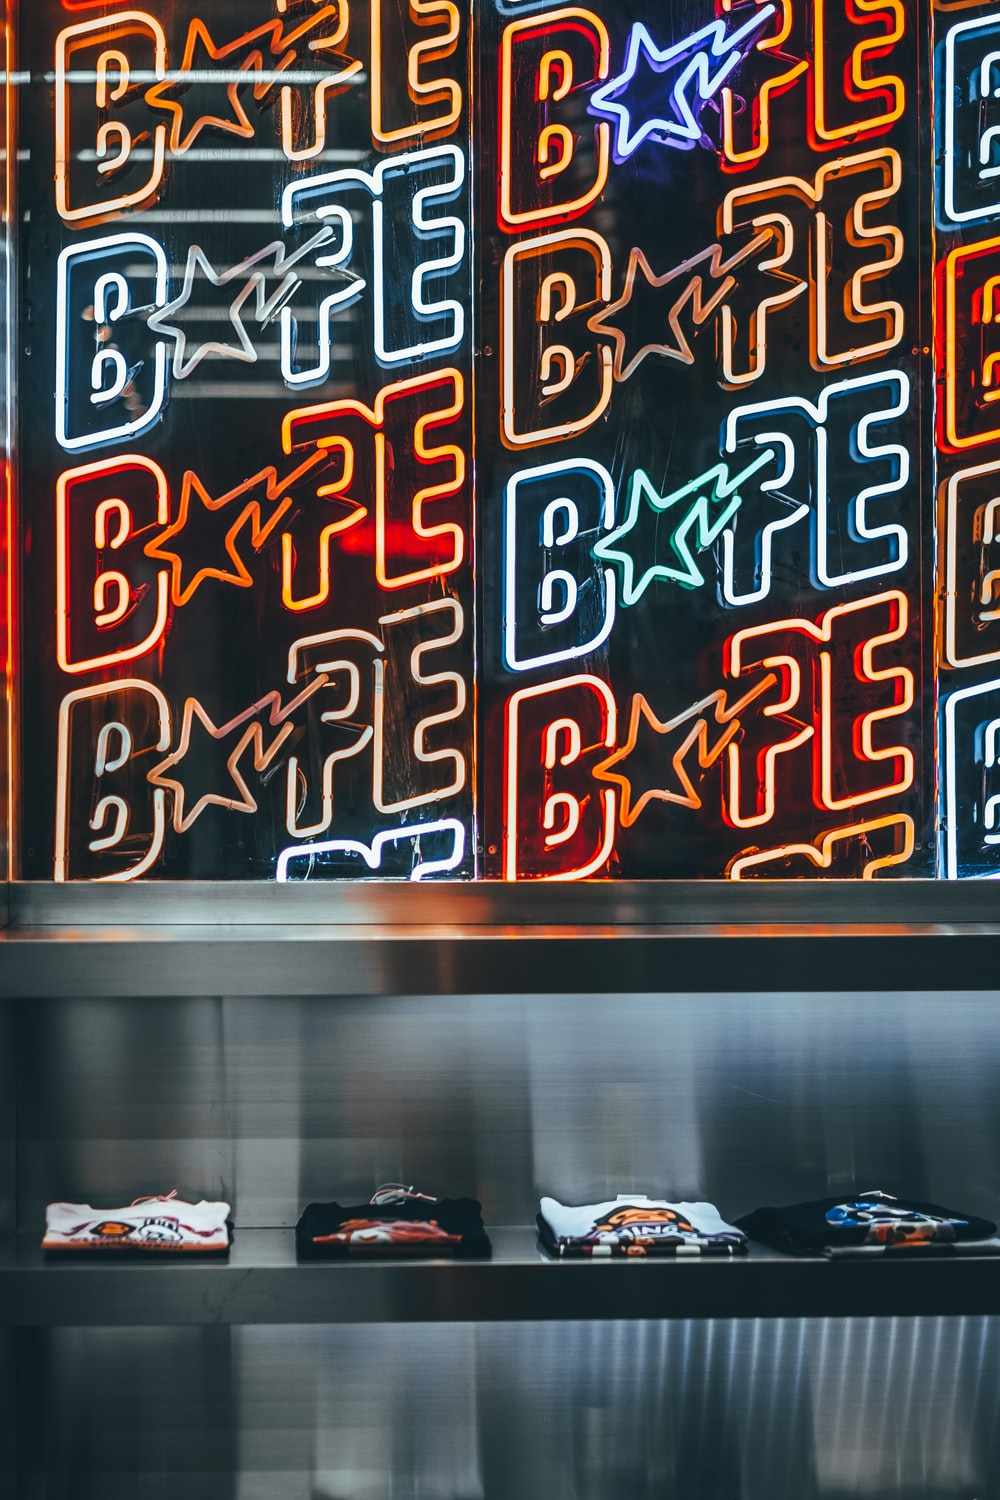 Bape neon signages turned on